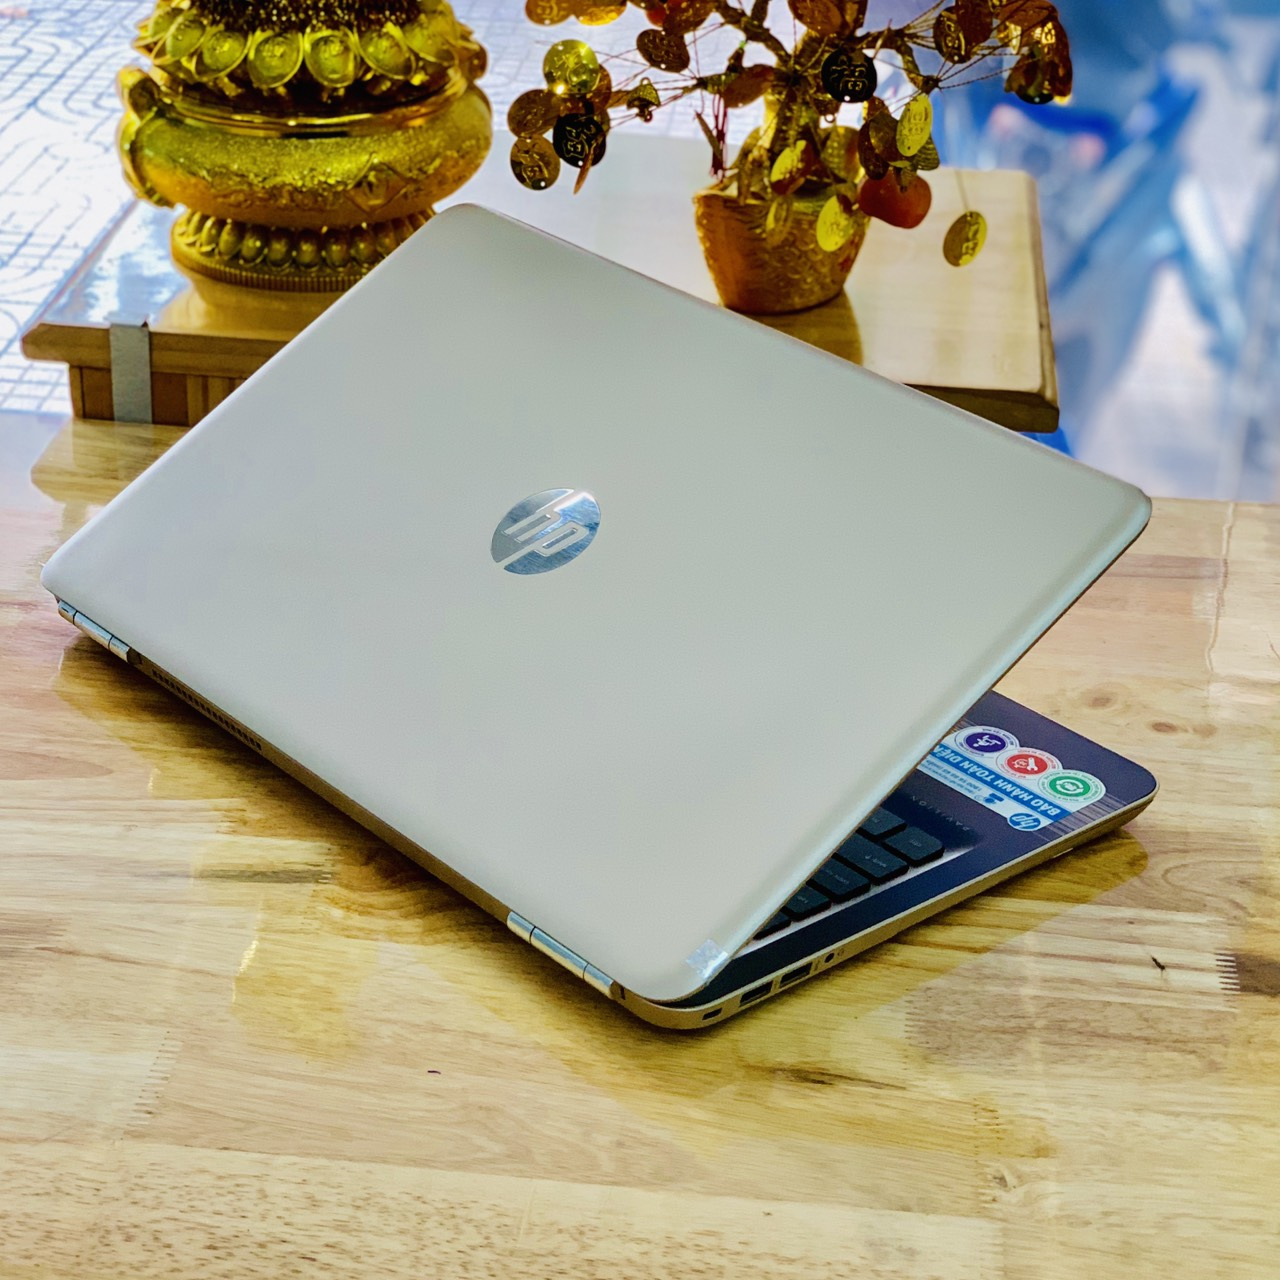 Laptop HP Palivion 15-au120TX i5-7200U Ram 4GB HDD 500GB Vga Rời 940MX(2GB) 15.6 inch Like New